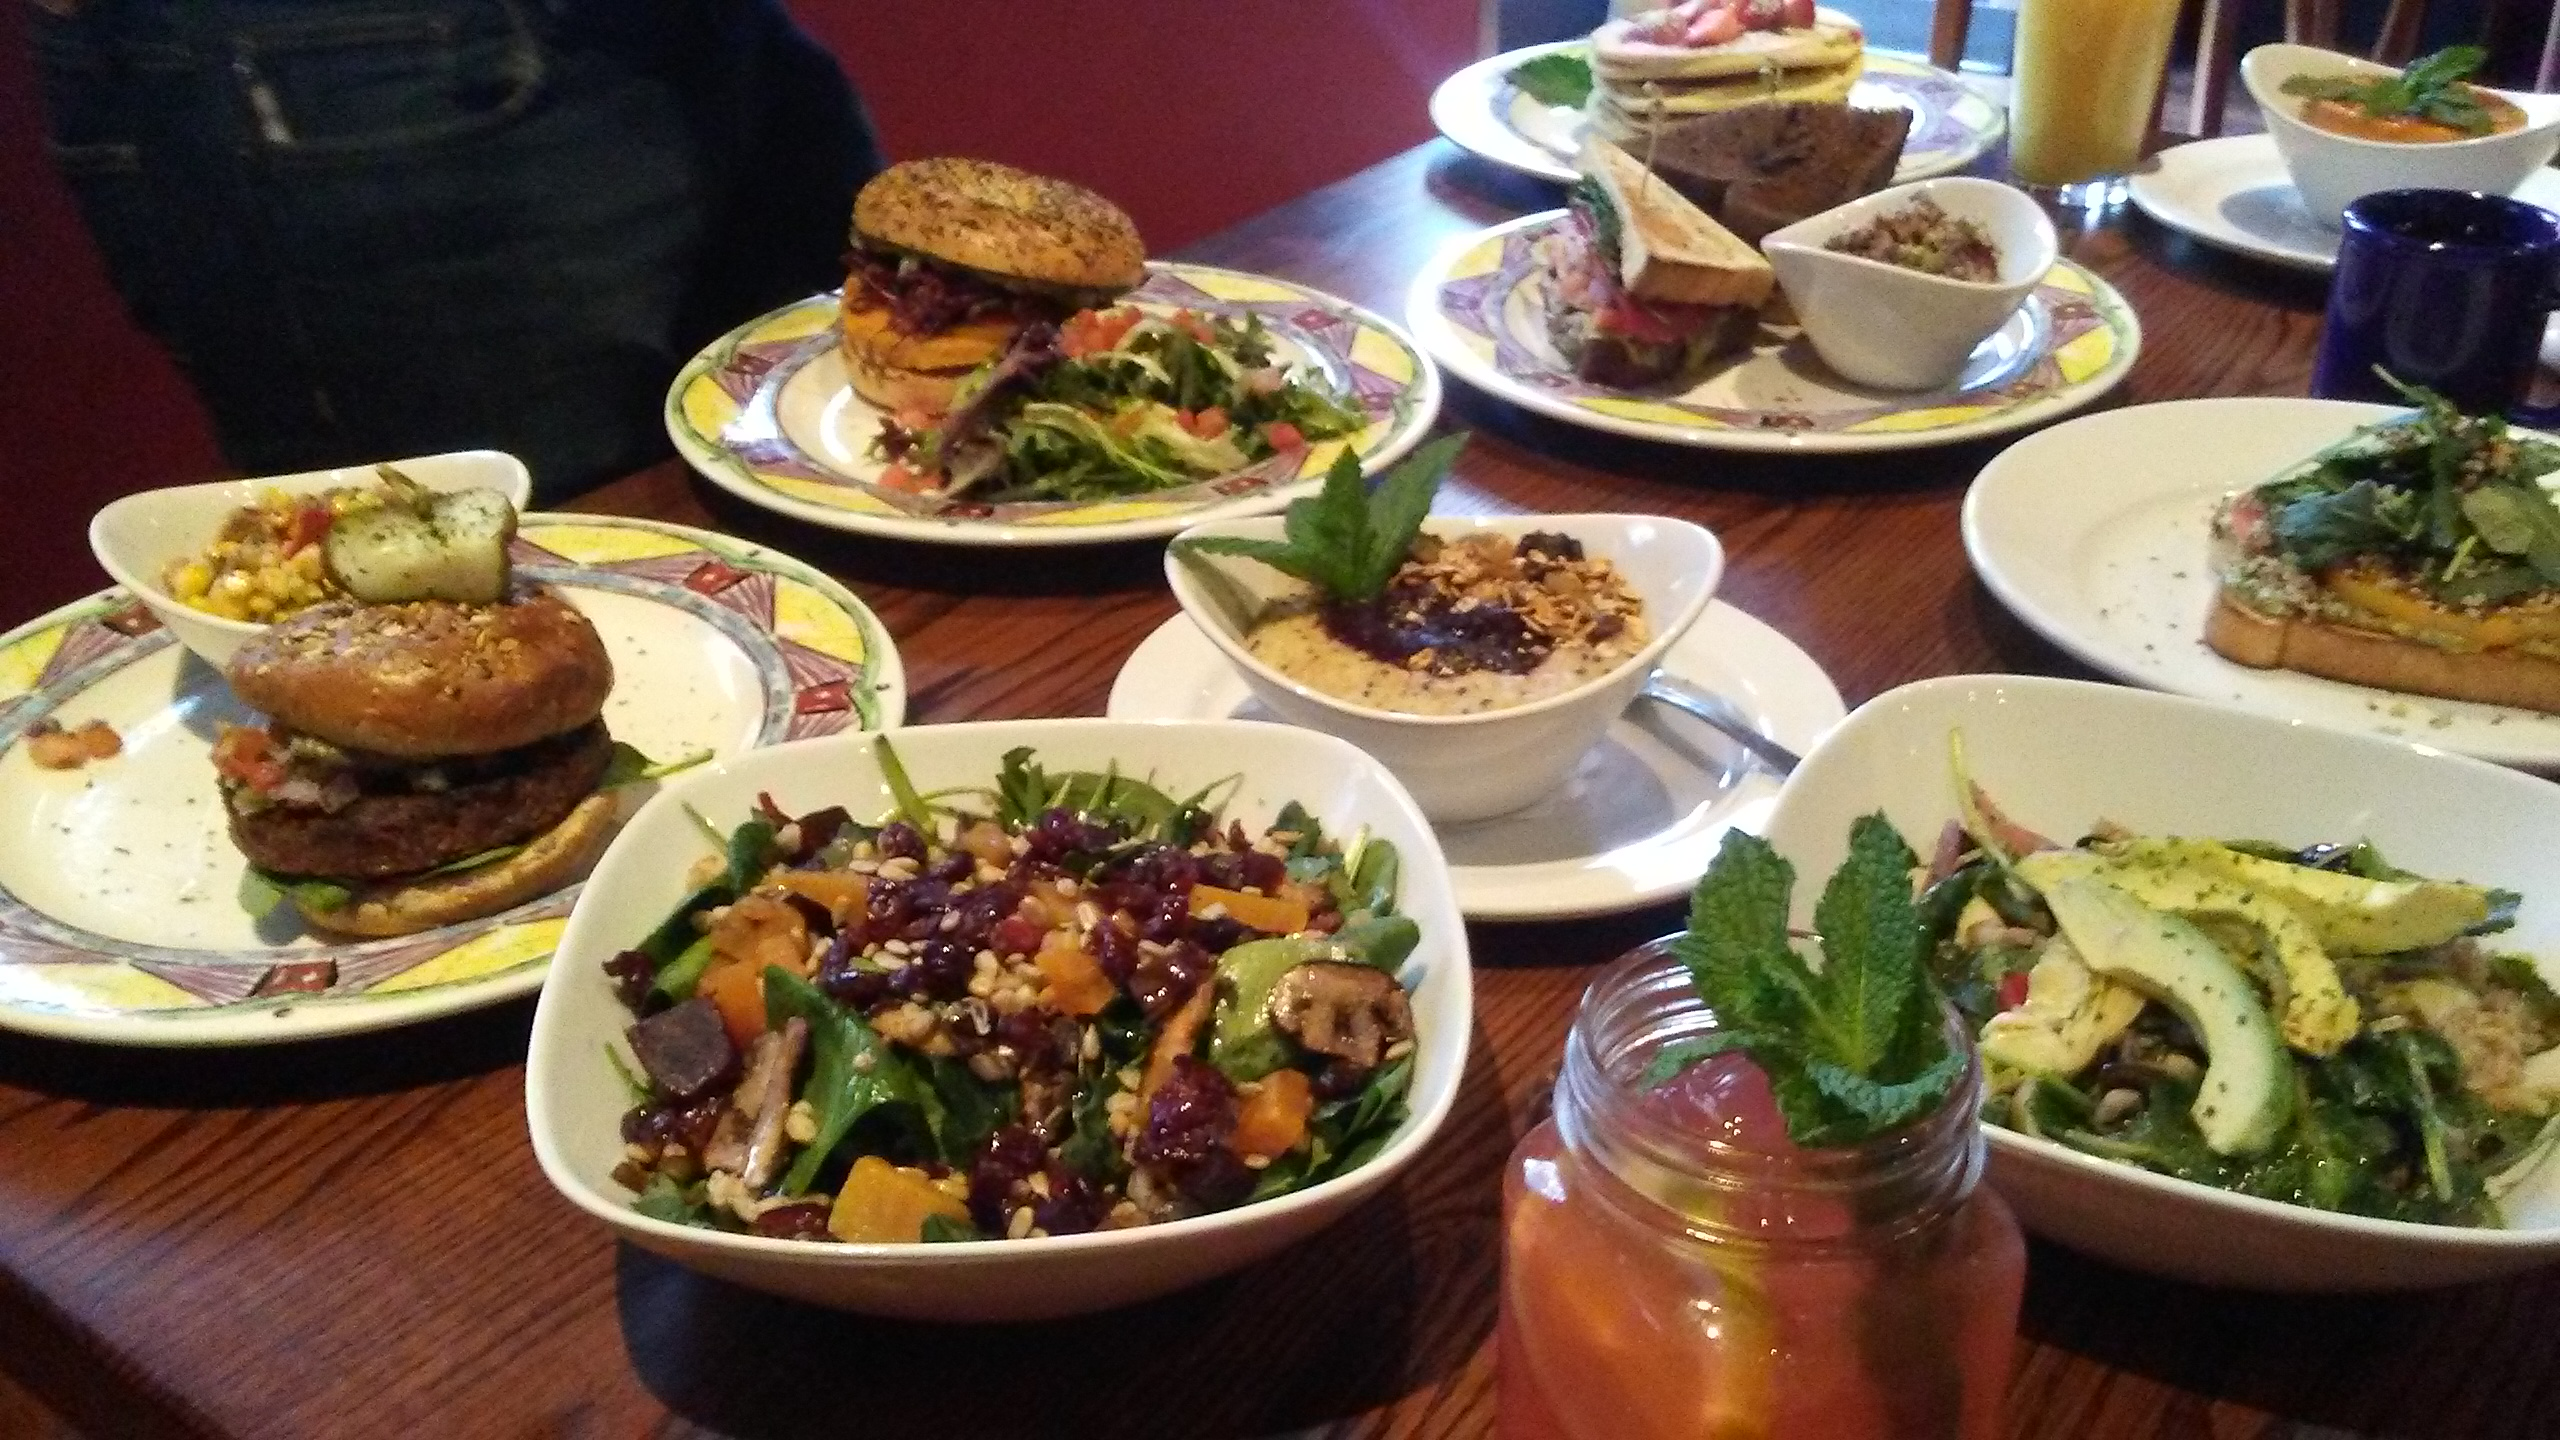 Miss Shirley S Café With Locations In Baltimore And Annapolis Maryland Pared The Greater Area Vegan Restaurant Week